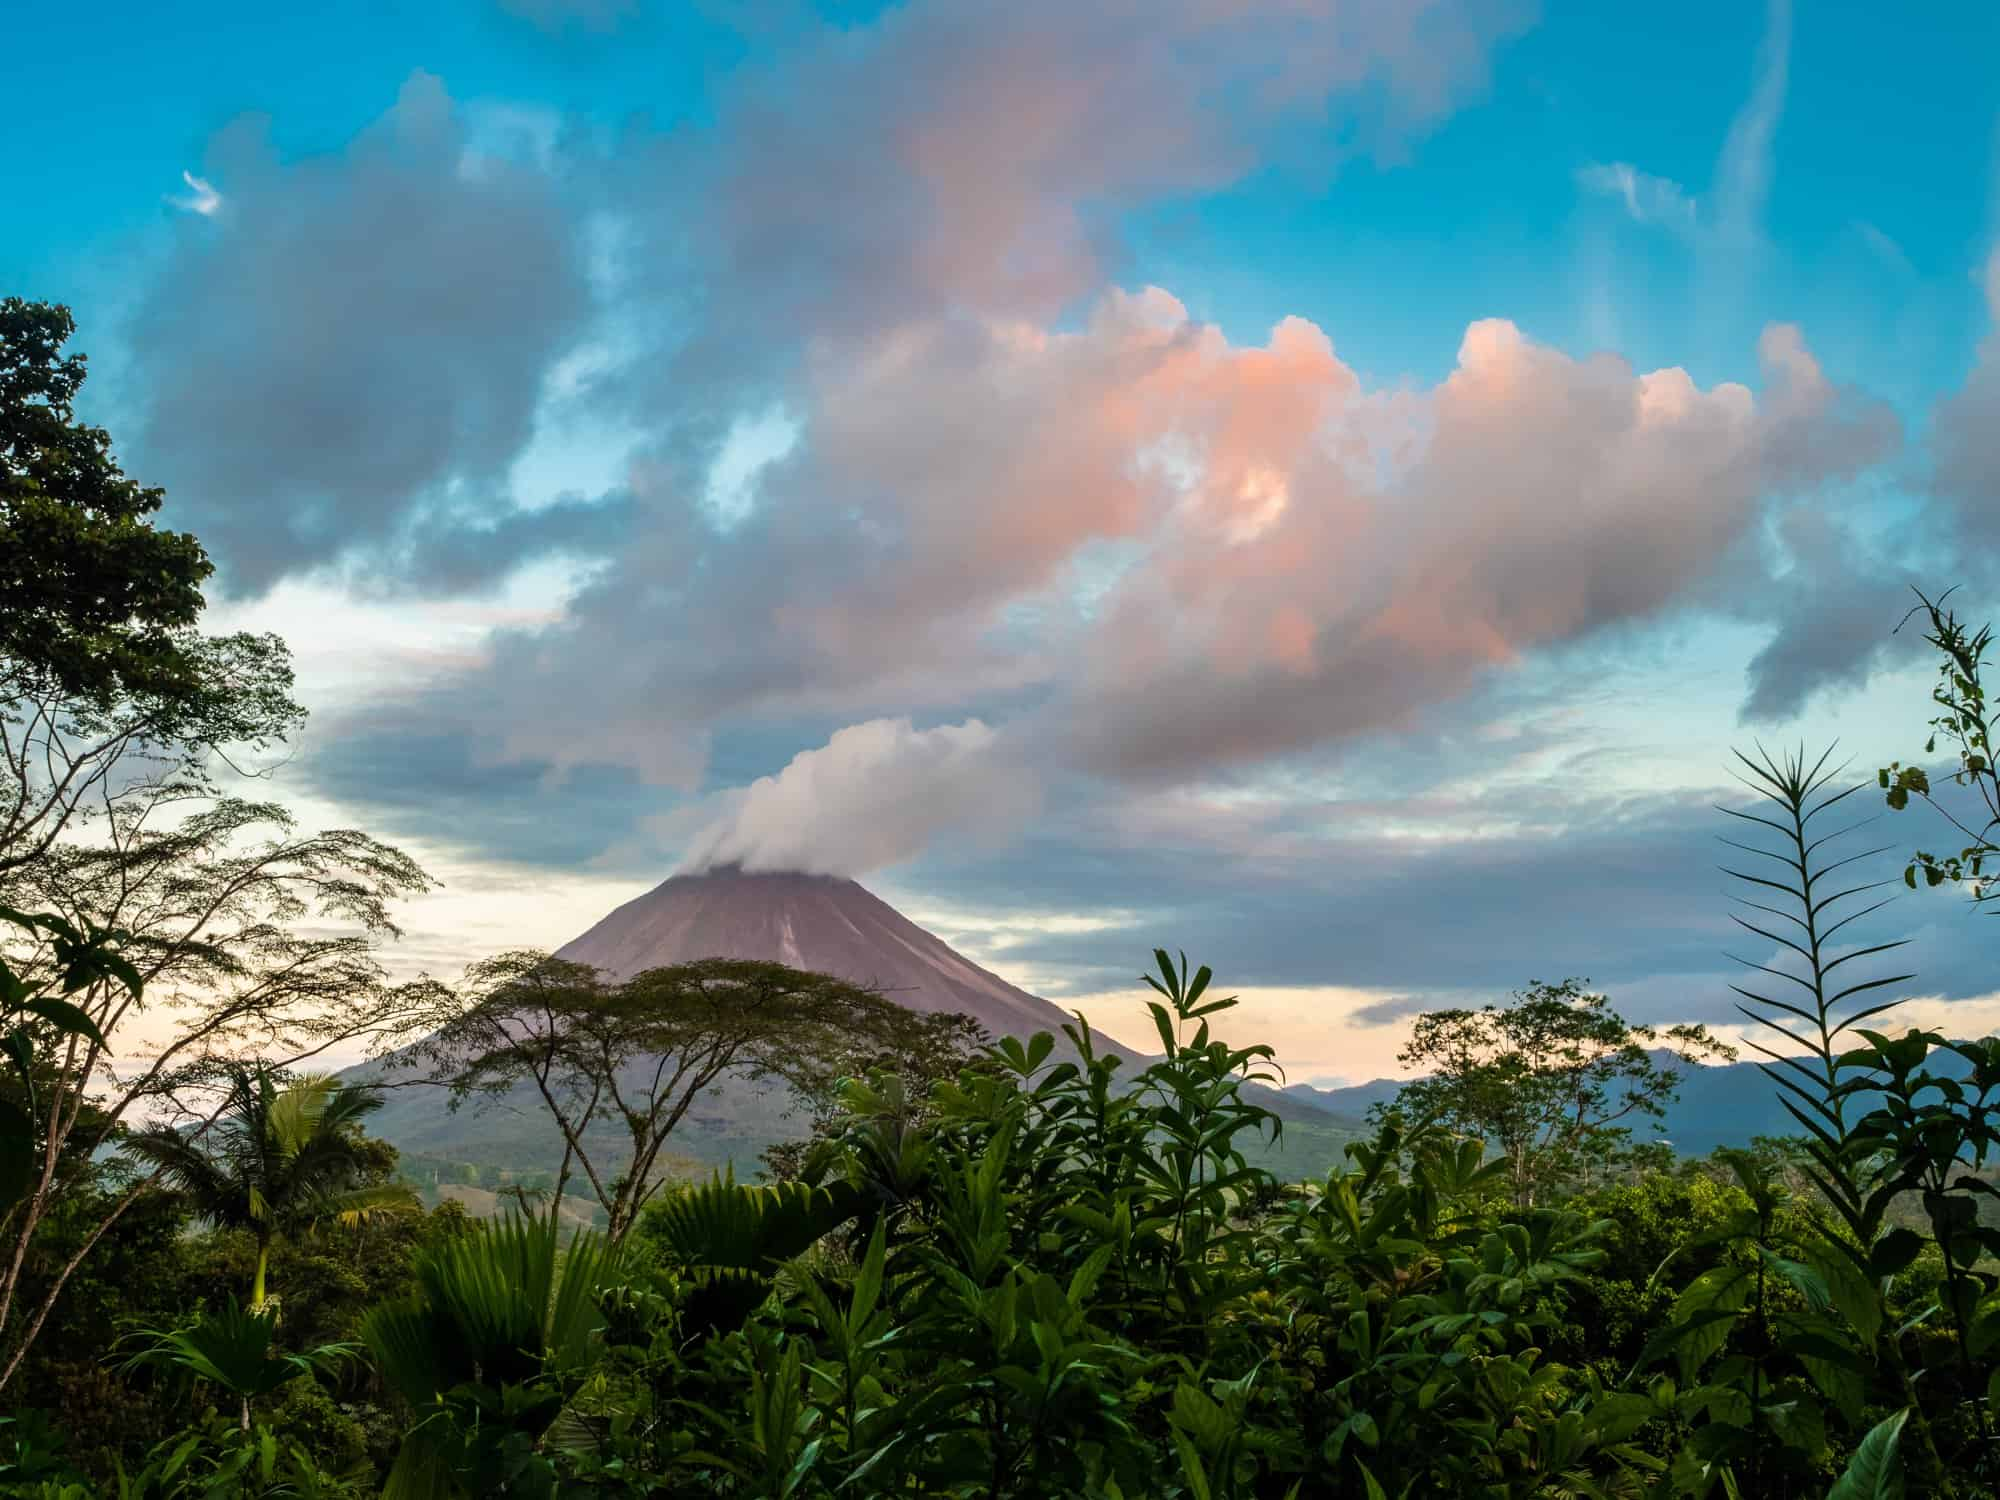 Arenal Volcano Costa Rica and La Fortuna: Hot Springs and Other Things to Do